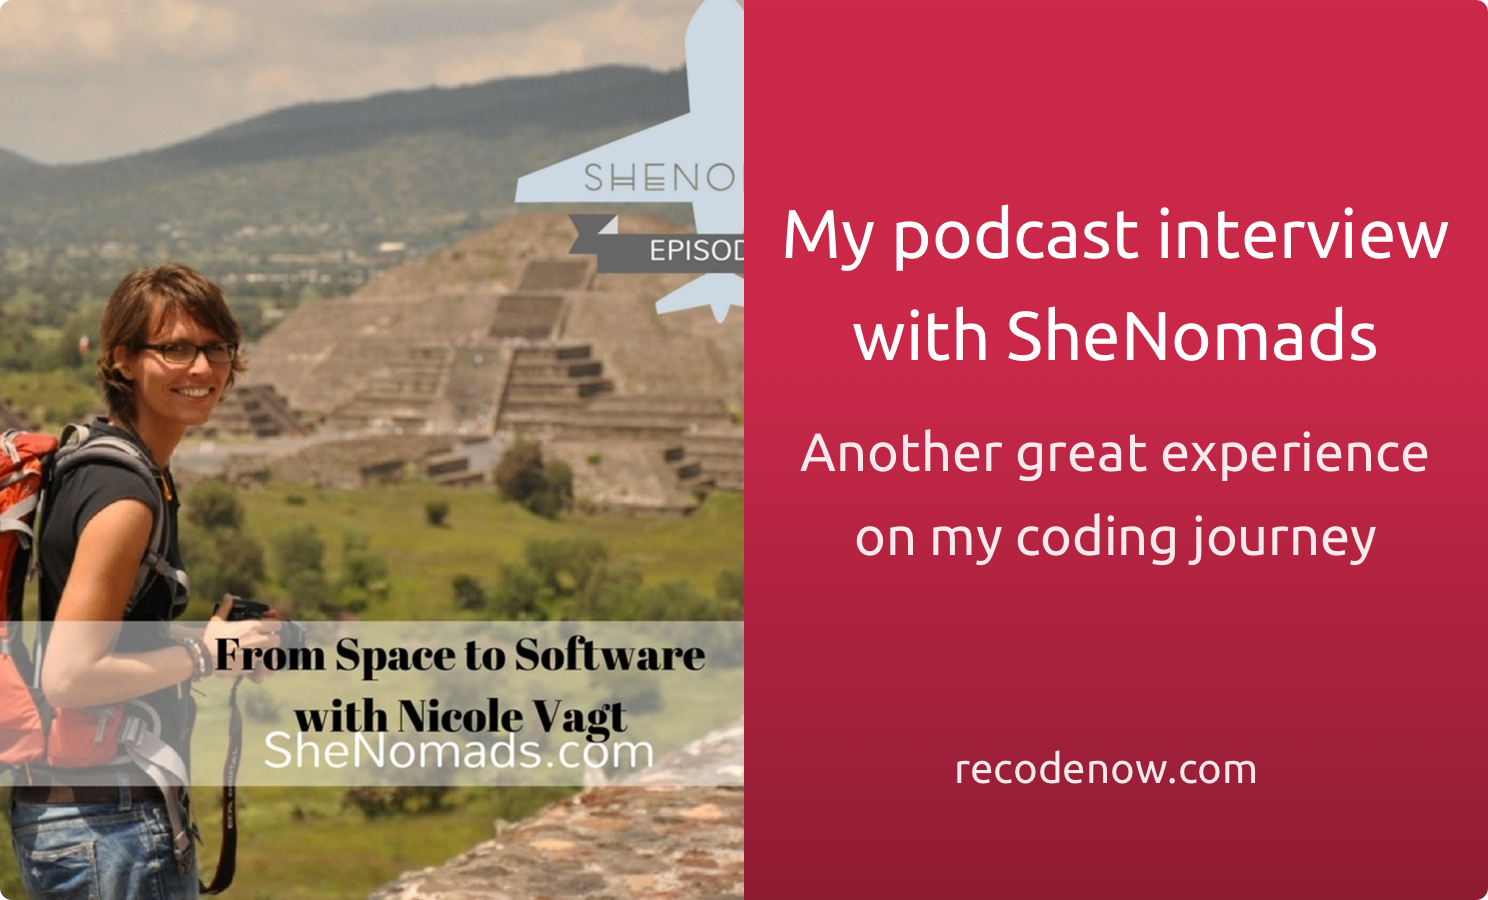 My podcast interview at SheNomads